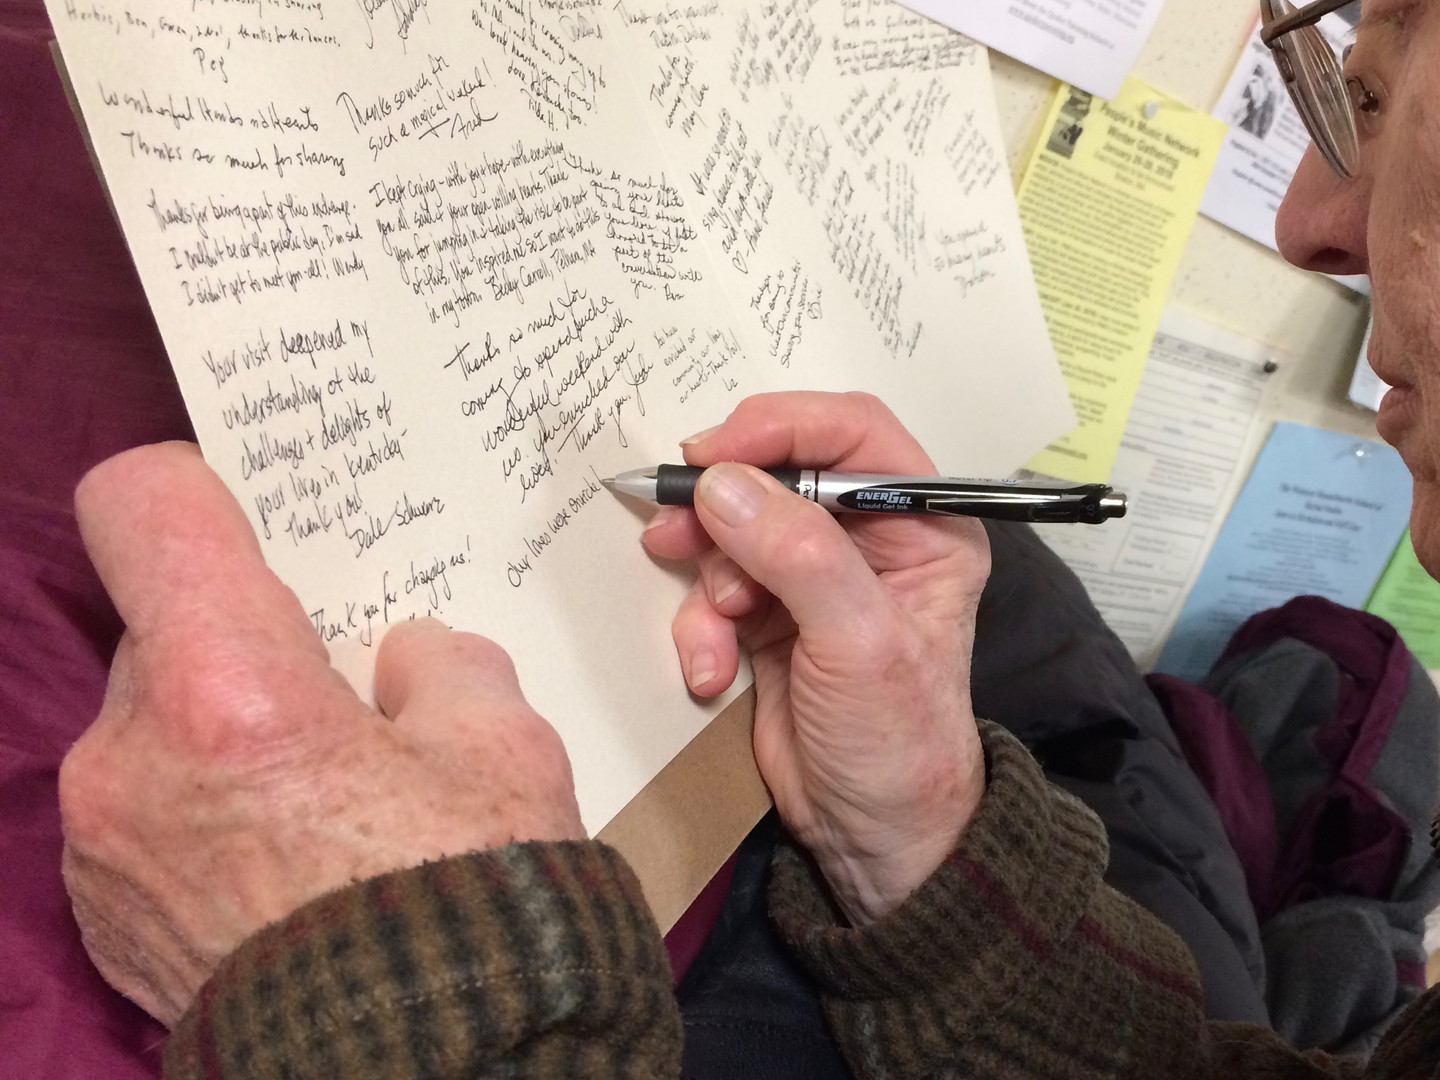 Signing the thank-you card